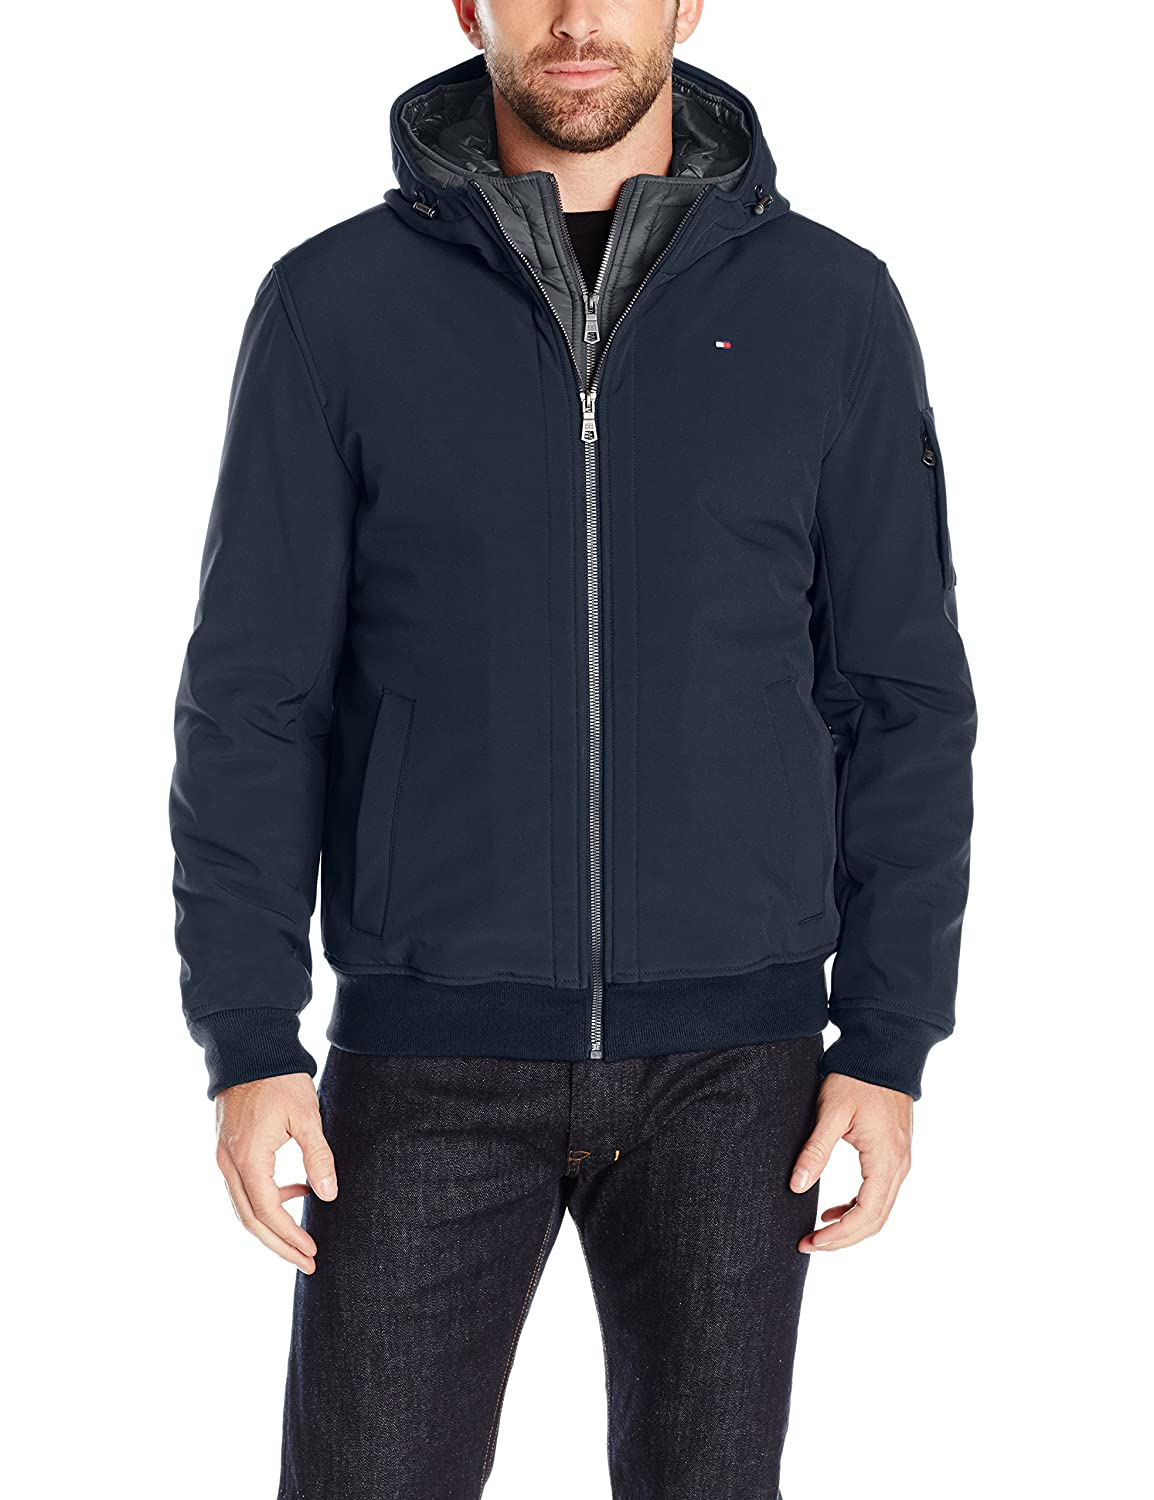 Tommy Hilfiger Mens Soft Shell Fashion Bomber with Contrast Bib and Hood Tommy Hilfiger Men/'s Outerwear 155AP223